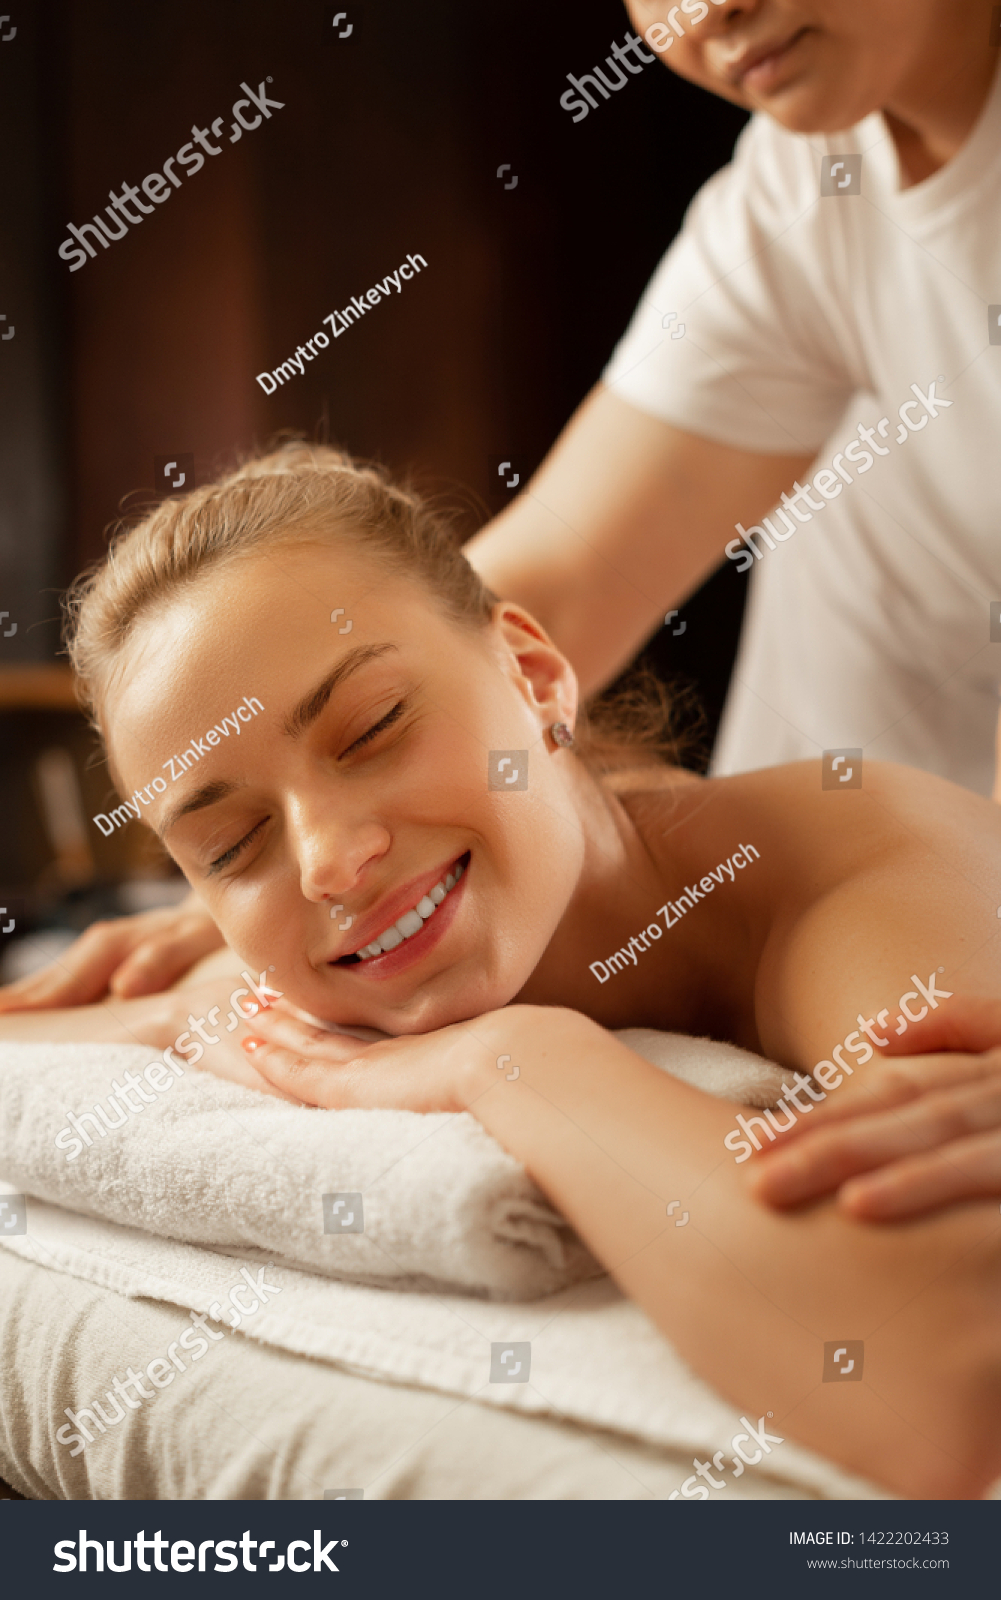 Skilled master pressing. Beautiful flawless woman chilling on covered matrass and receiving procedure during SPA day #1422202433